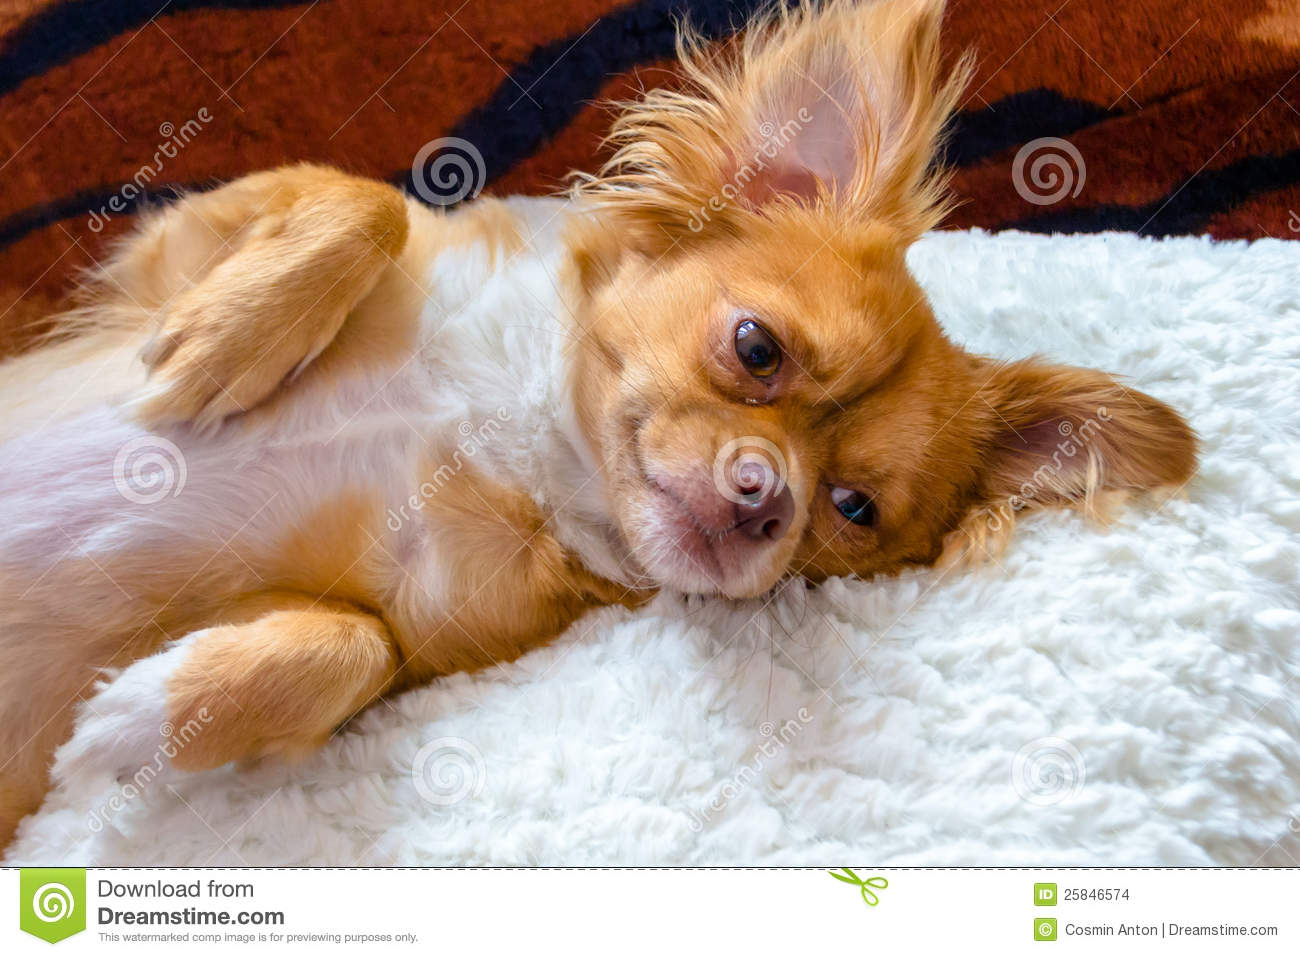 Animal Pillow Relaxation : Dog Relaxing On Pillow Stock Images - Image: 25846574